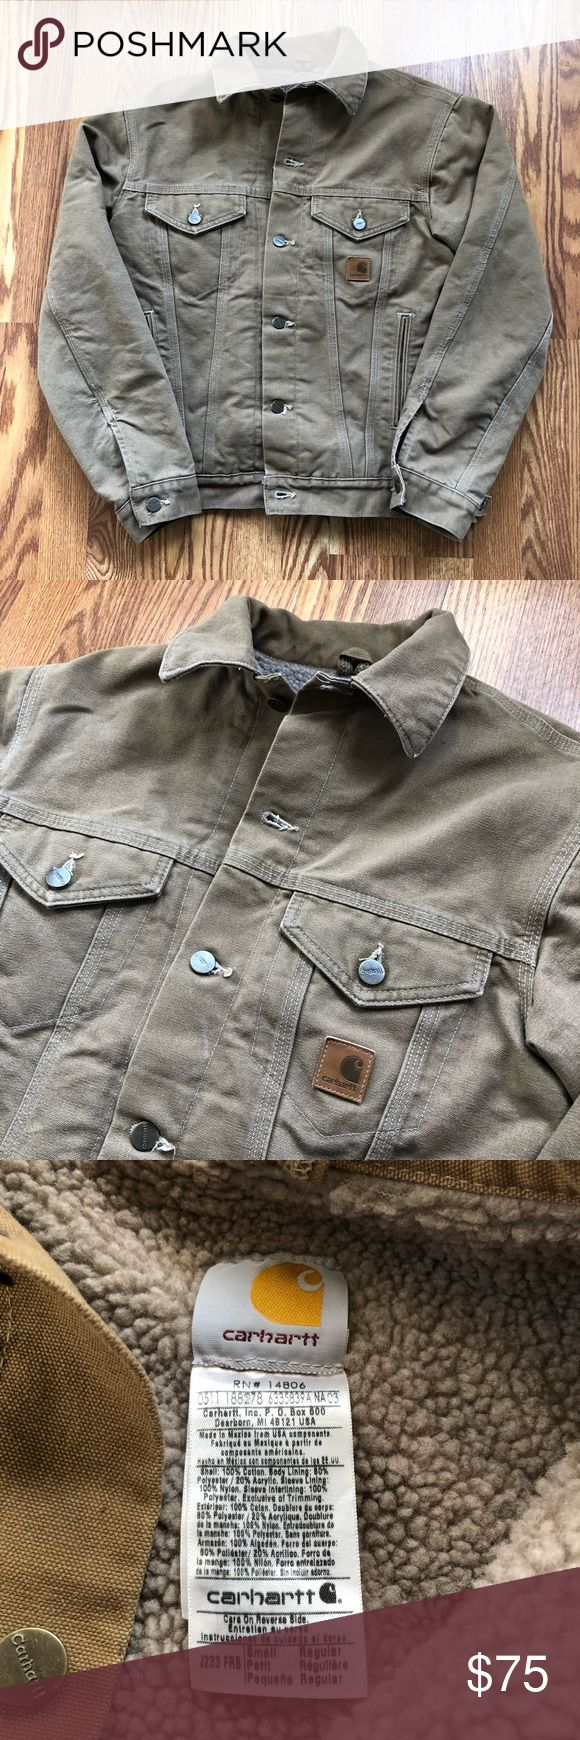 Vtg Carhartt Sherpa Canvas jacket Vintage Carhartt canvas cold weather jacket. Has classic Sherpa Lining. Beautiful leather patch on the front. Very clean, no notable imperfections.     Condition: 9/10 Color: Tan Size: Small  I ship out fast with tracking!  Measurements upon request. Subject to tiny imperfections. Carhartt Jackets & Coats Bomber & Varsity